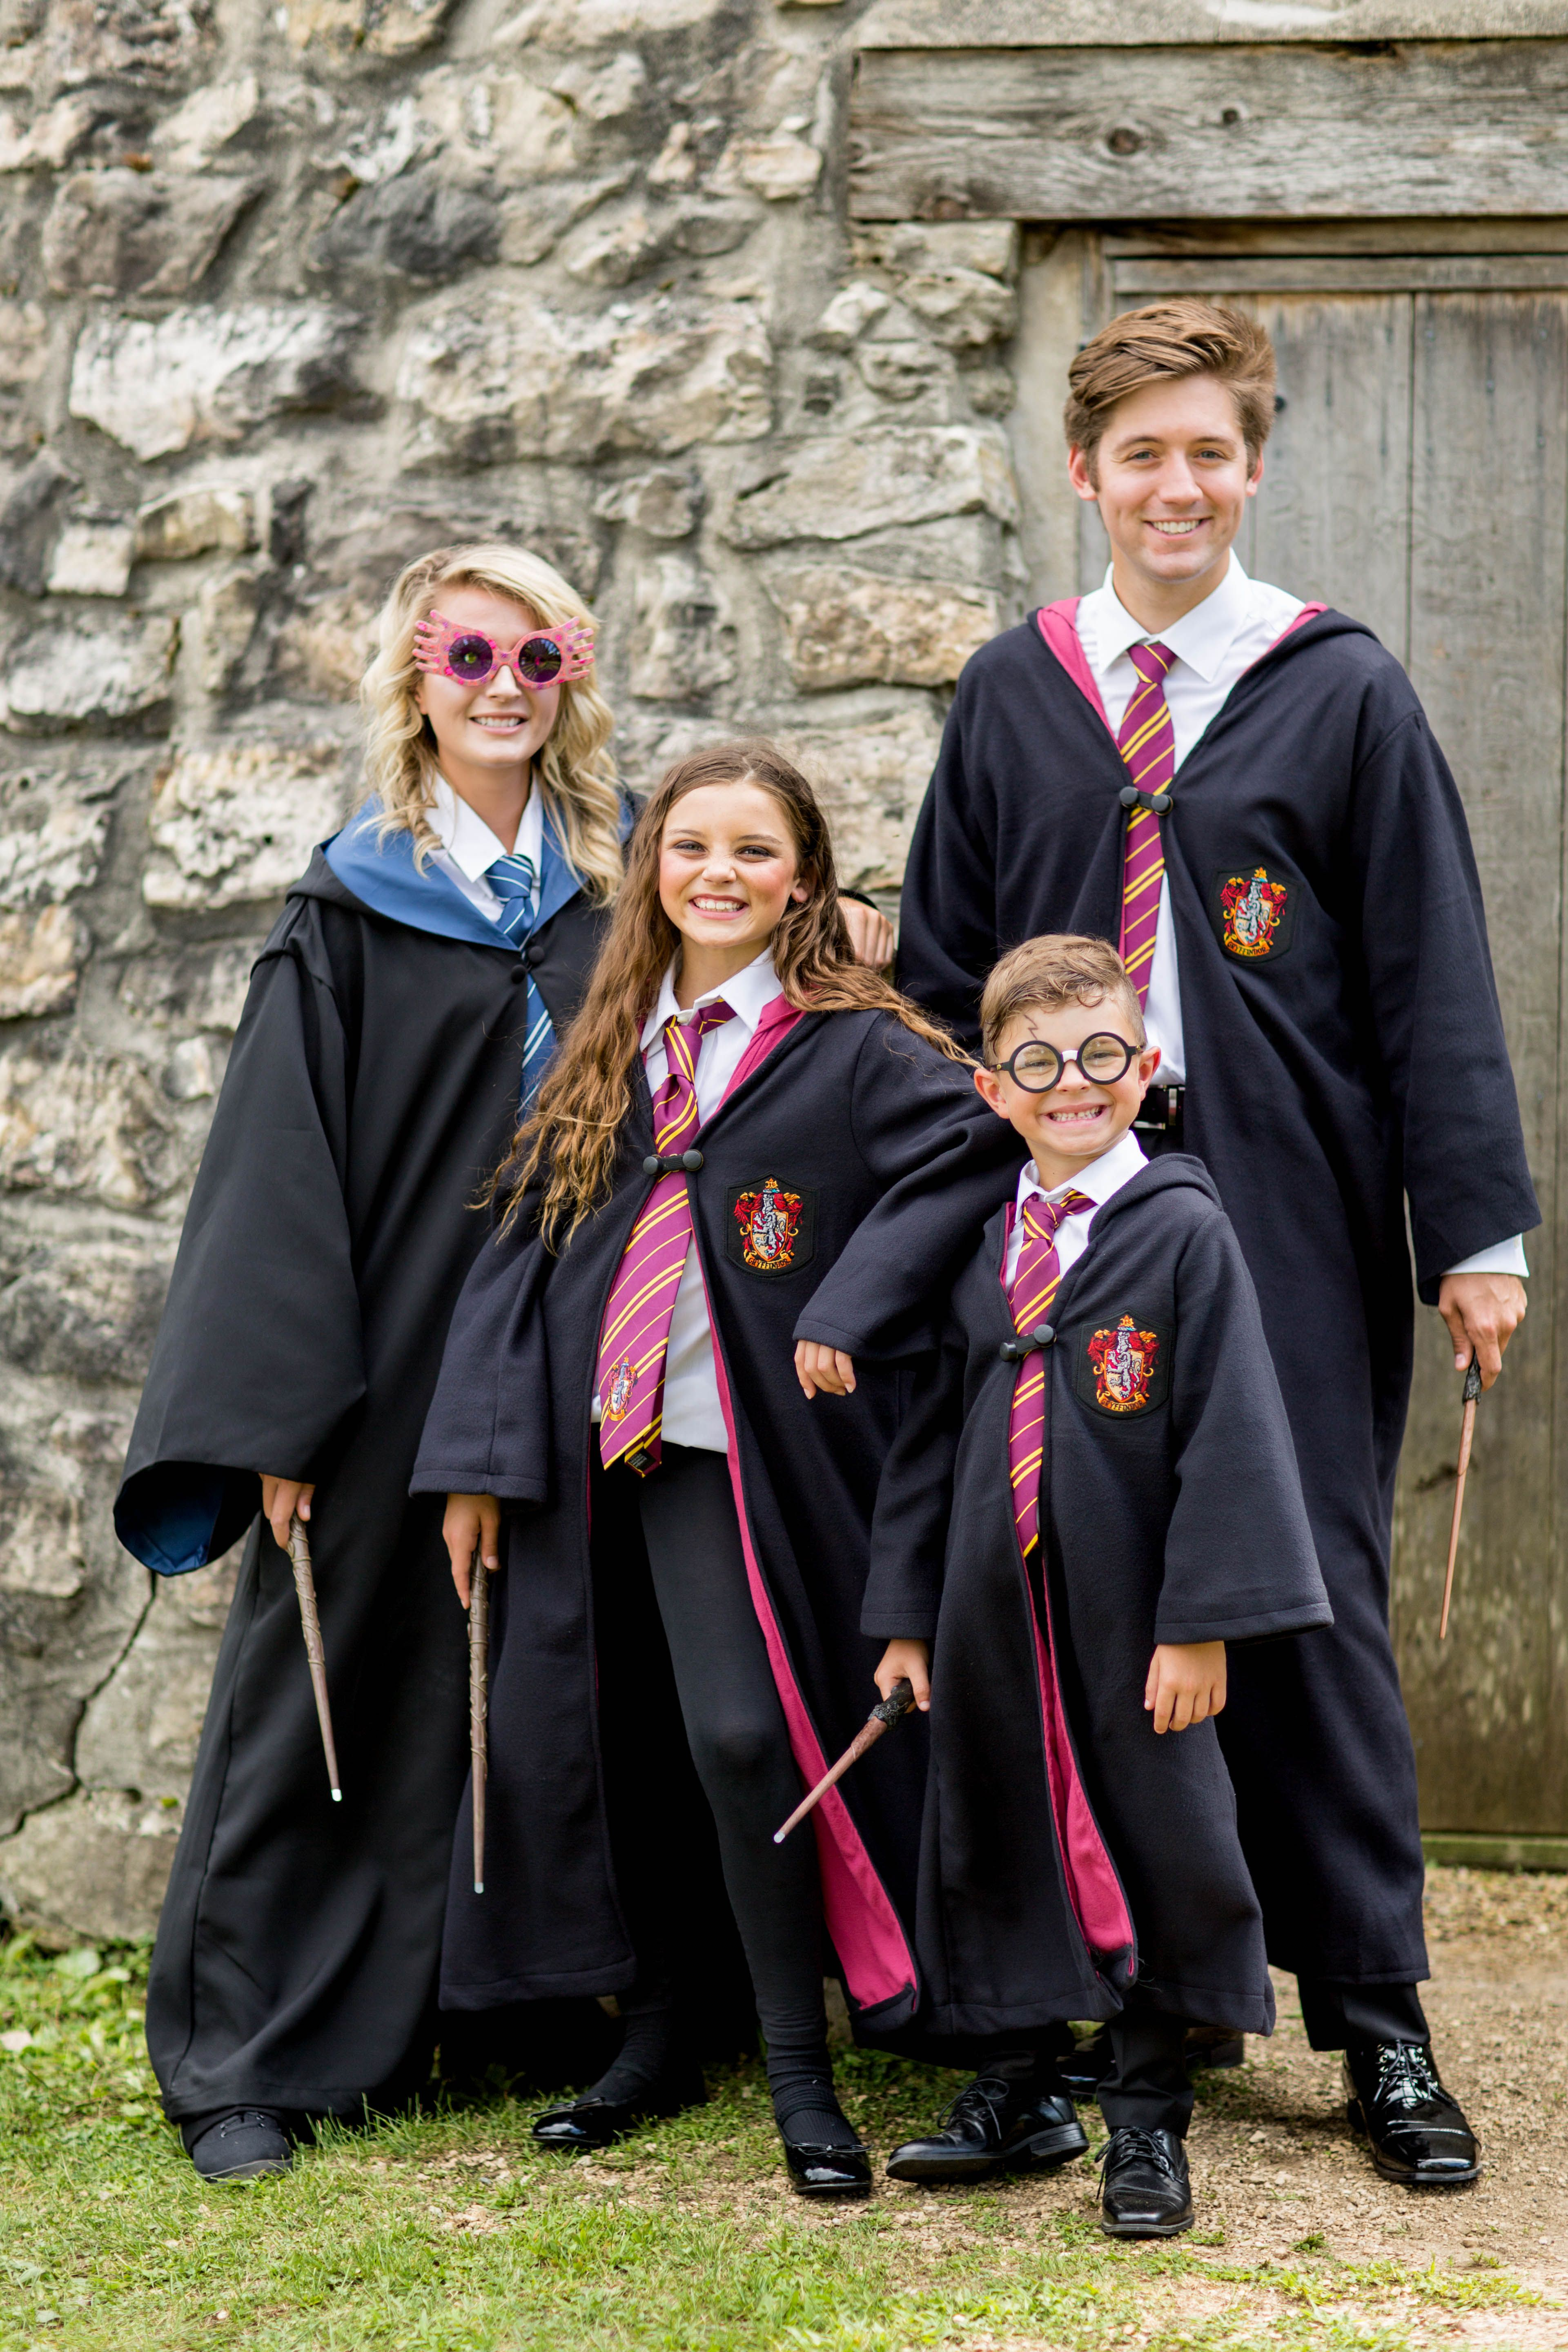 Group/Family Halloween costume ideas- Join the world of witchcraft and wizardry and dress the whole family up as your favorite character from the film Harry Potter this Halloween! We've got robes for every wizard, big and small!